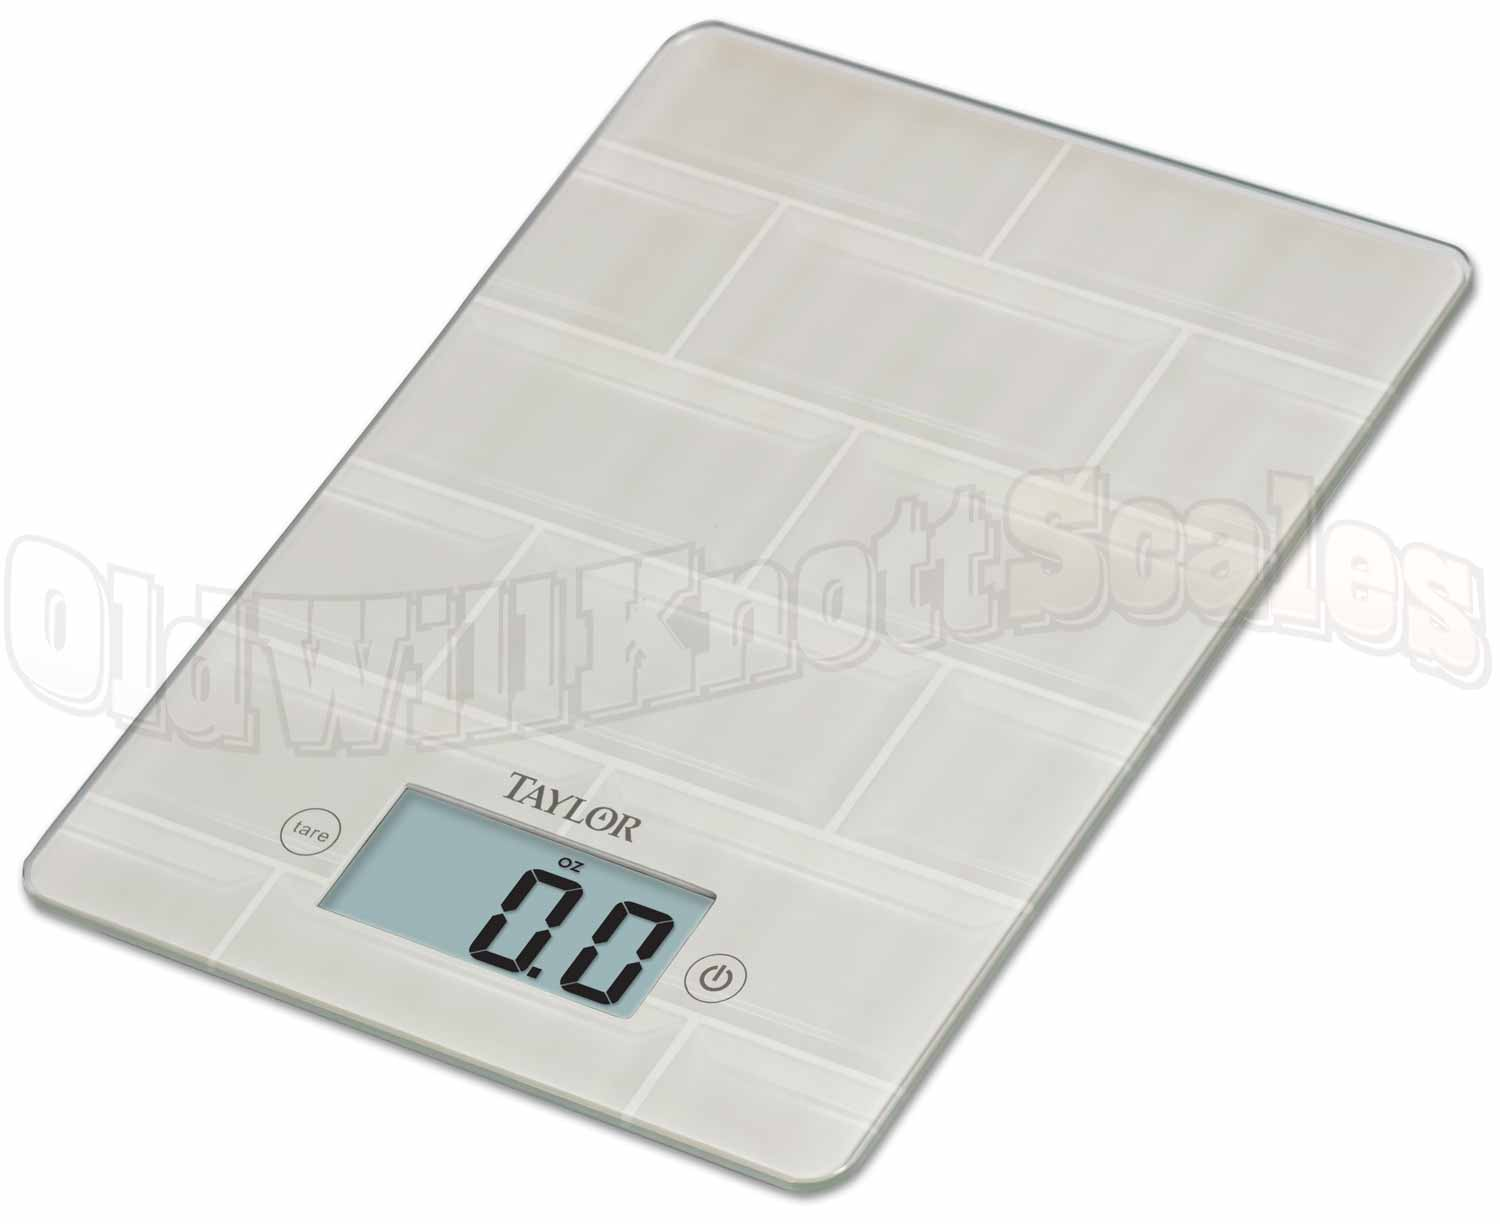 Taylor 3812 Glass Top Digital Kitchen Scale with Tile Design